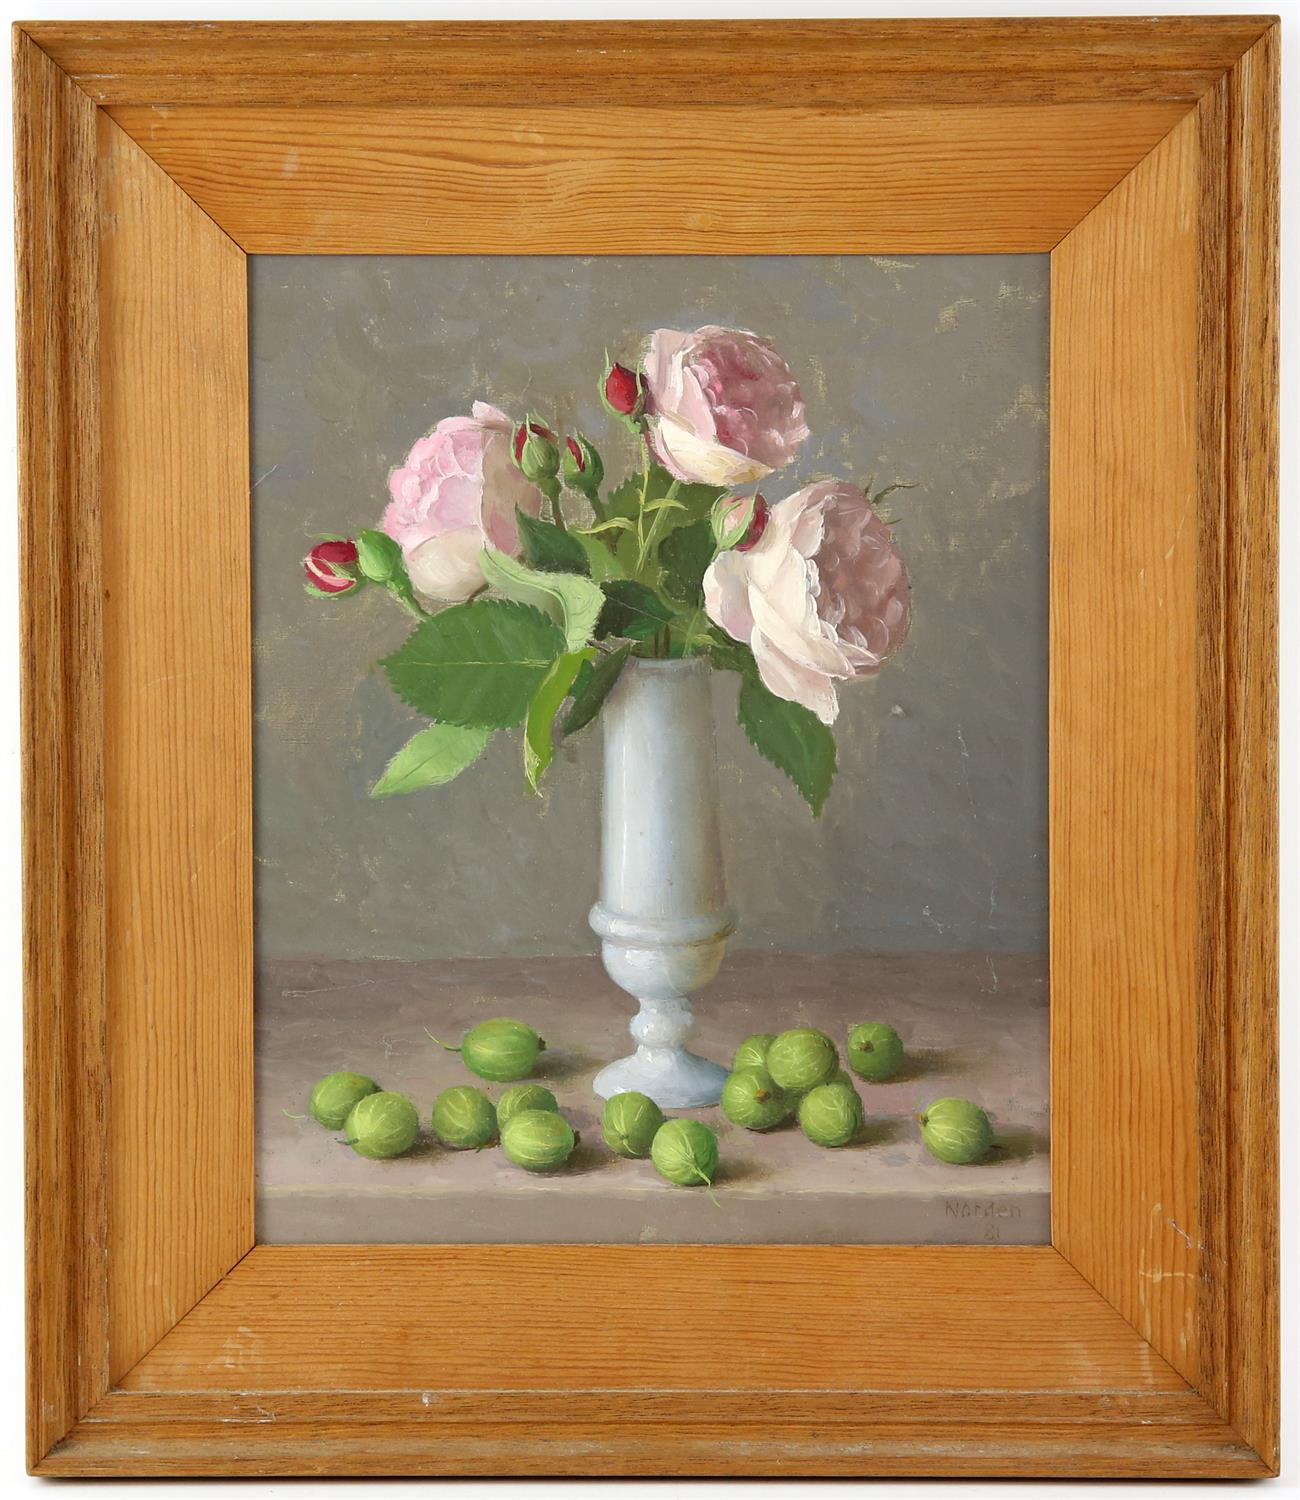 Gerald Norden (British,1912-2000). 'Roses and Gooseberries. Oil on panel. 1981. Signed and dated - Image 2 of 2